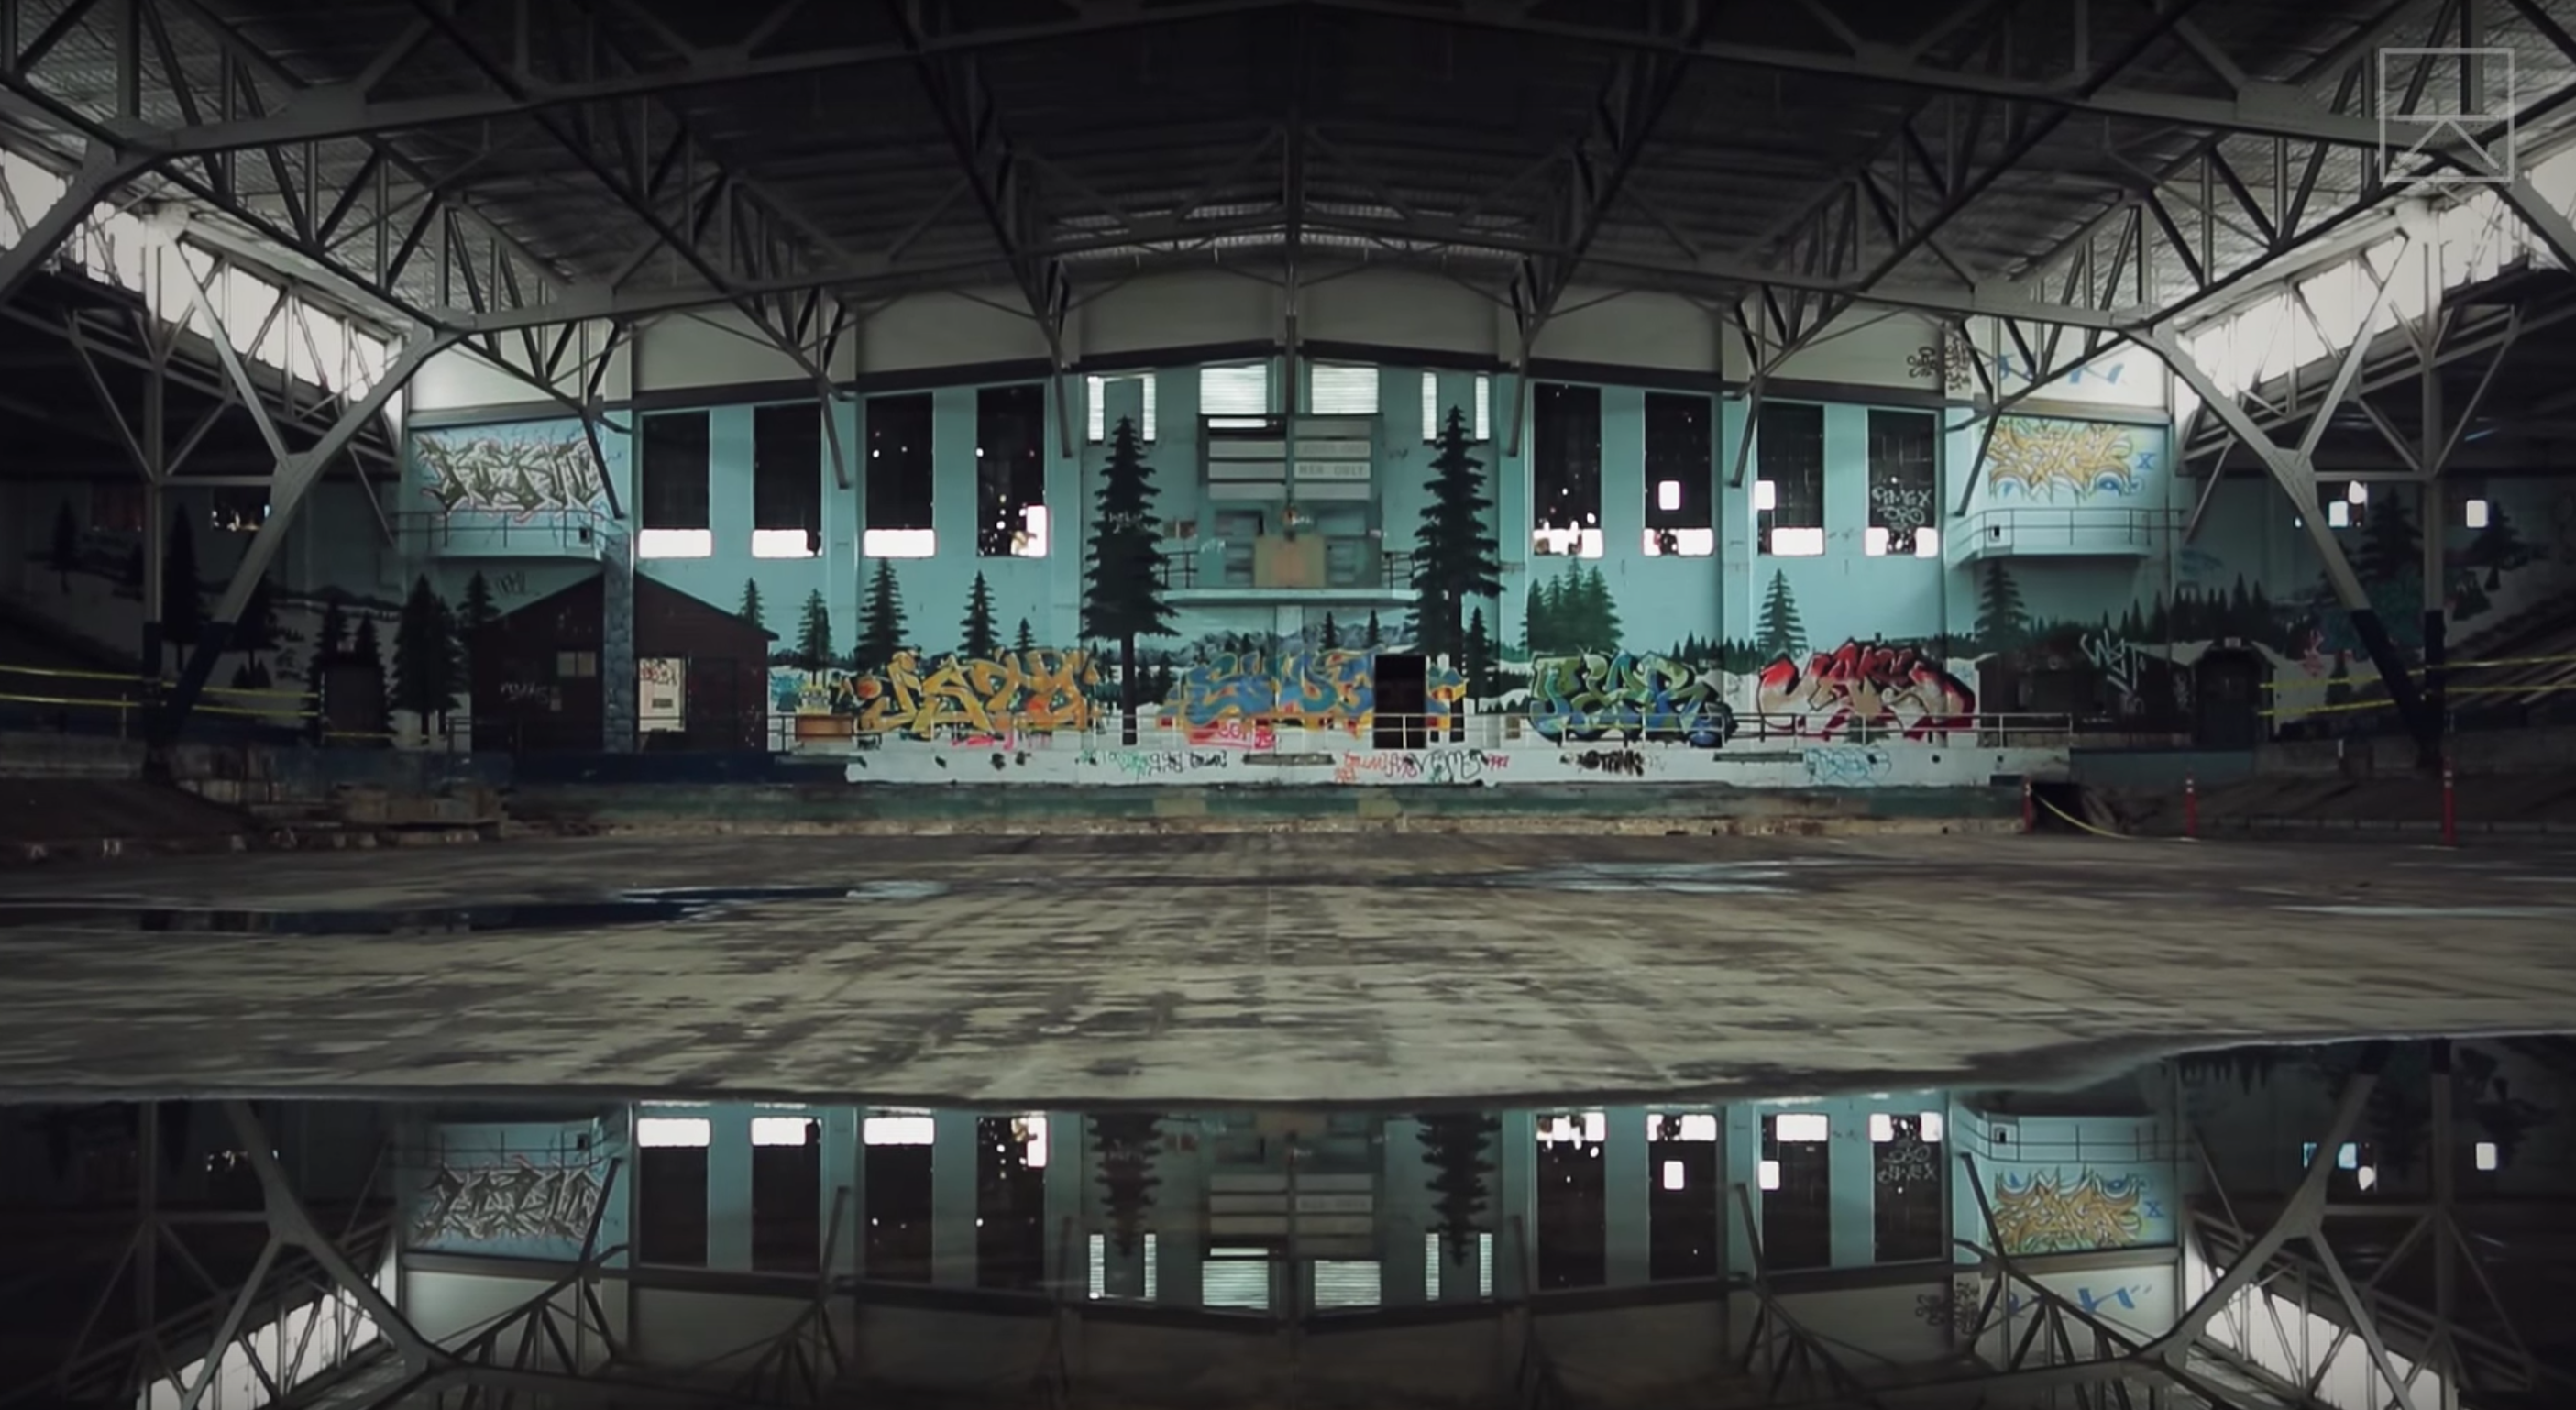 Beautiful Abandoned Olympic Sized Skating Rink In California